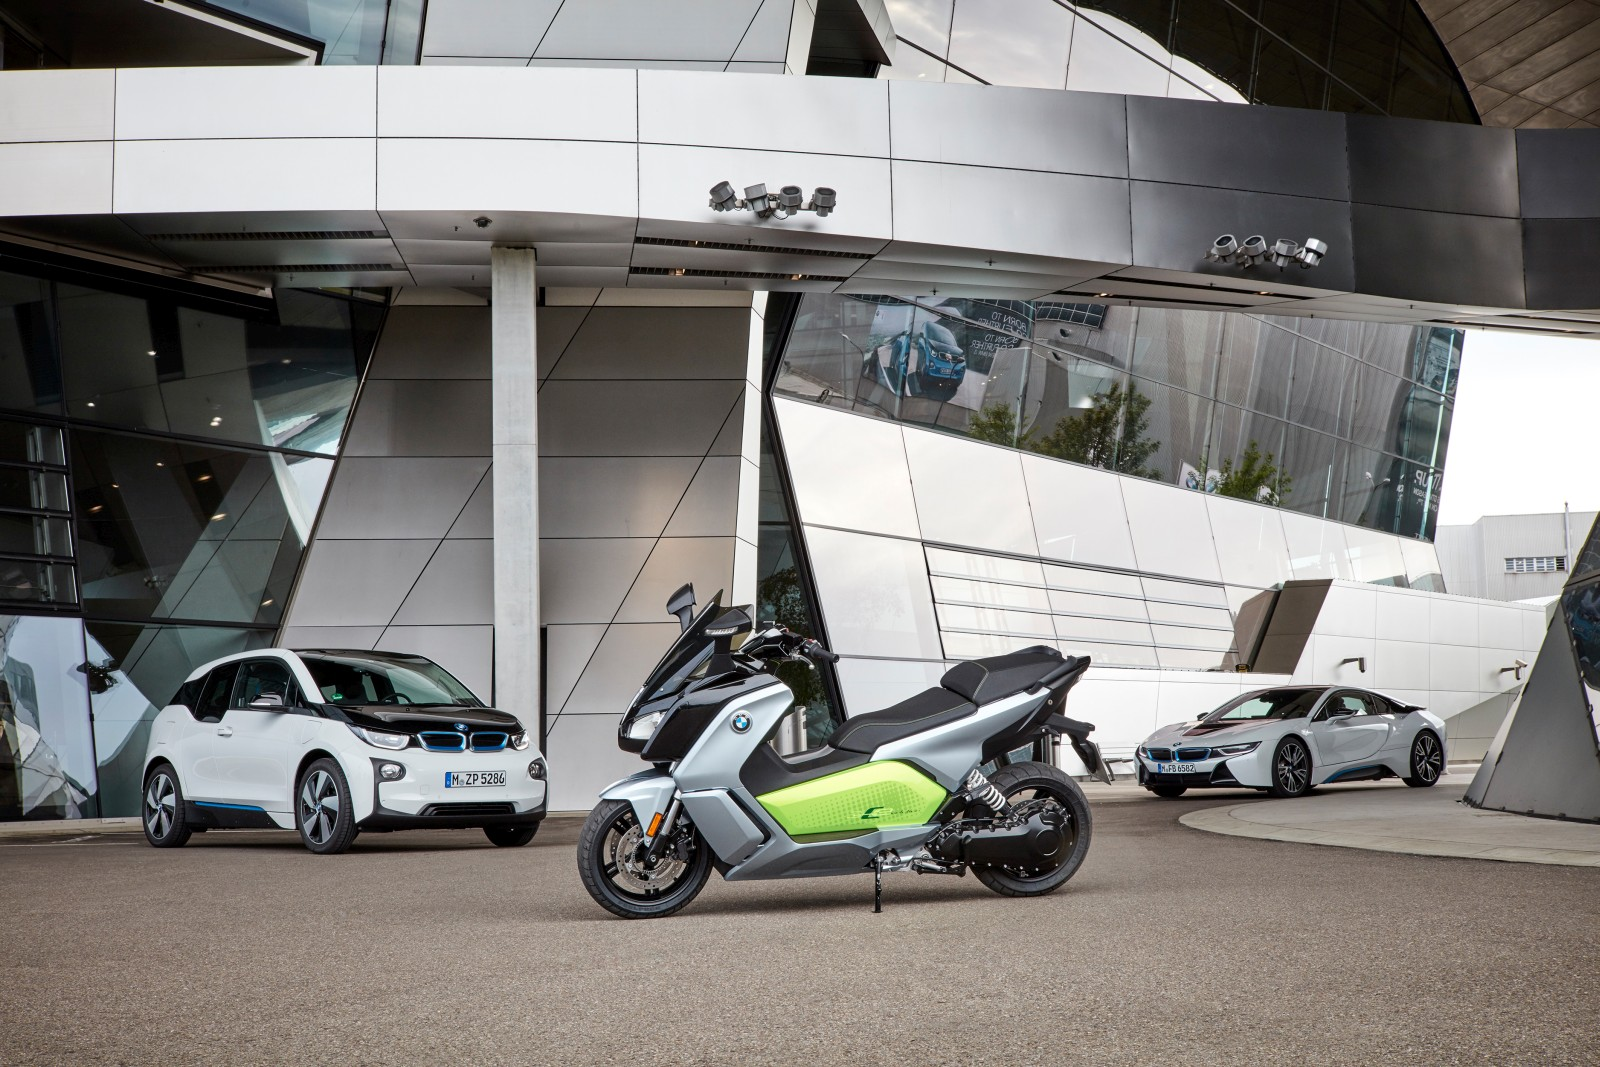 new-bmw-c-evolution-electric-scooter-26